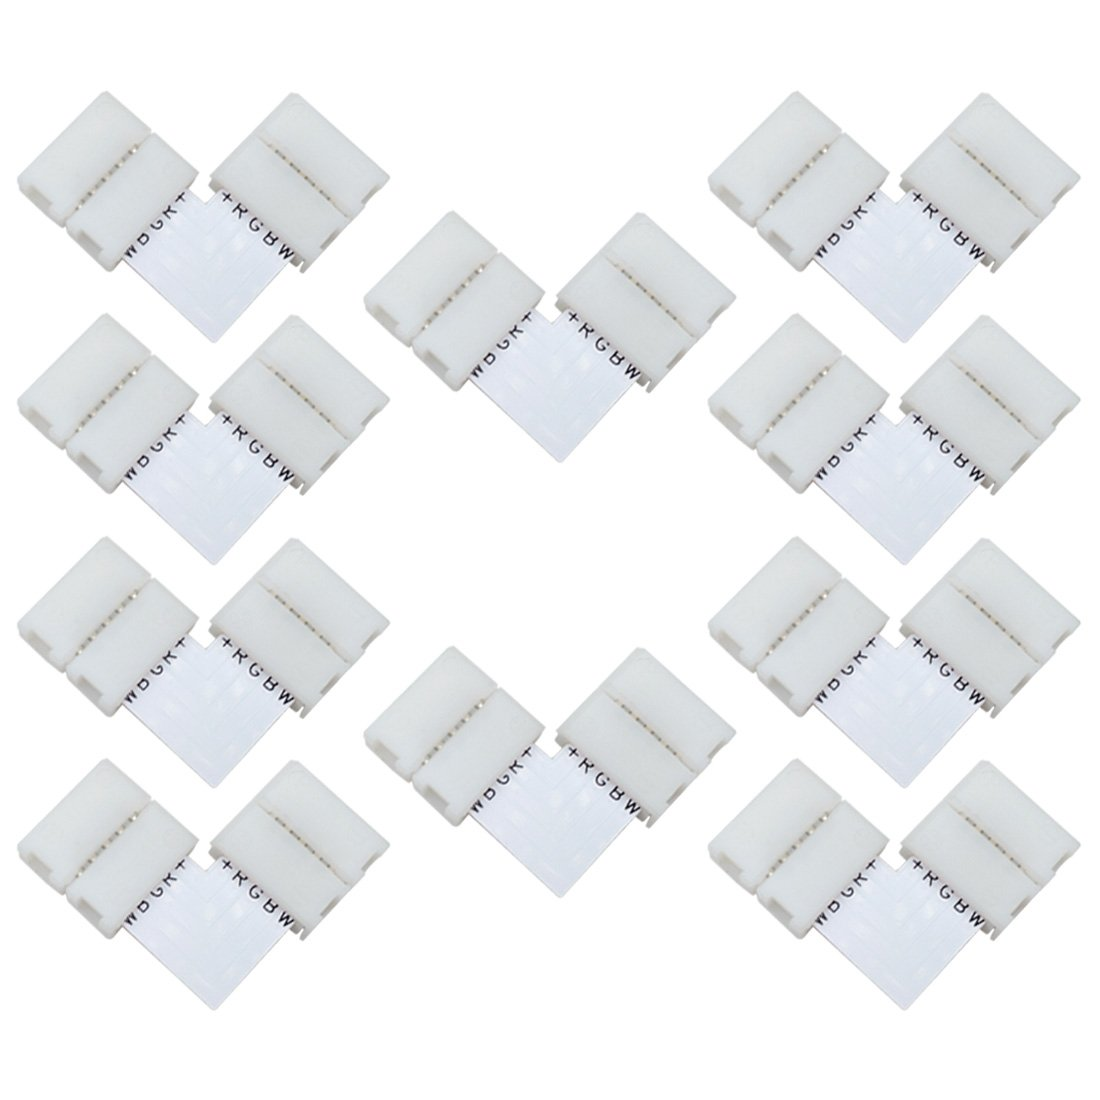 Liwinting 10pcs 5 pin L shape LED Connector Quick Splitter Right Angle Corner Connector for 12mm Wide SMD 5050 RGBW LED Strip Lights LED Ribbon Lights LED Strip to Strip Adapter, white (10pcs/pack) ULC 33